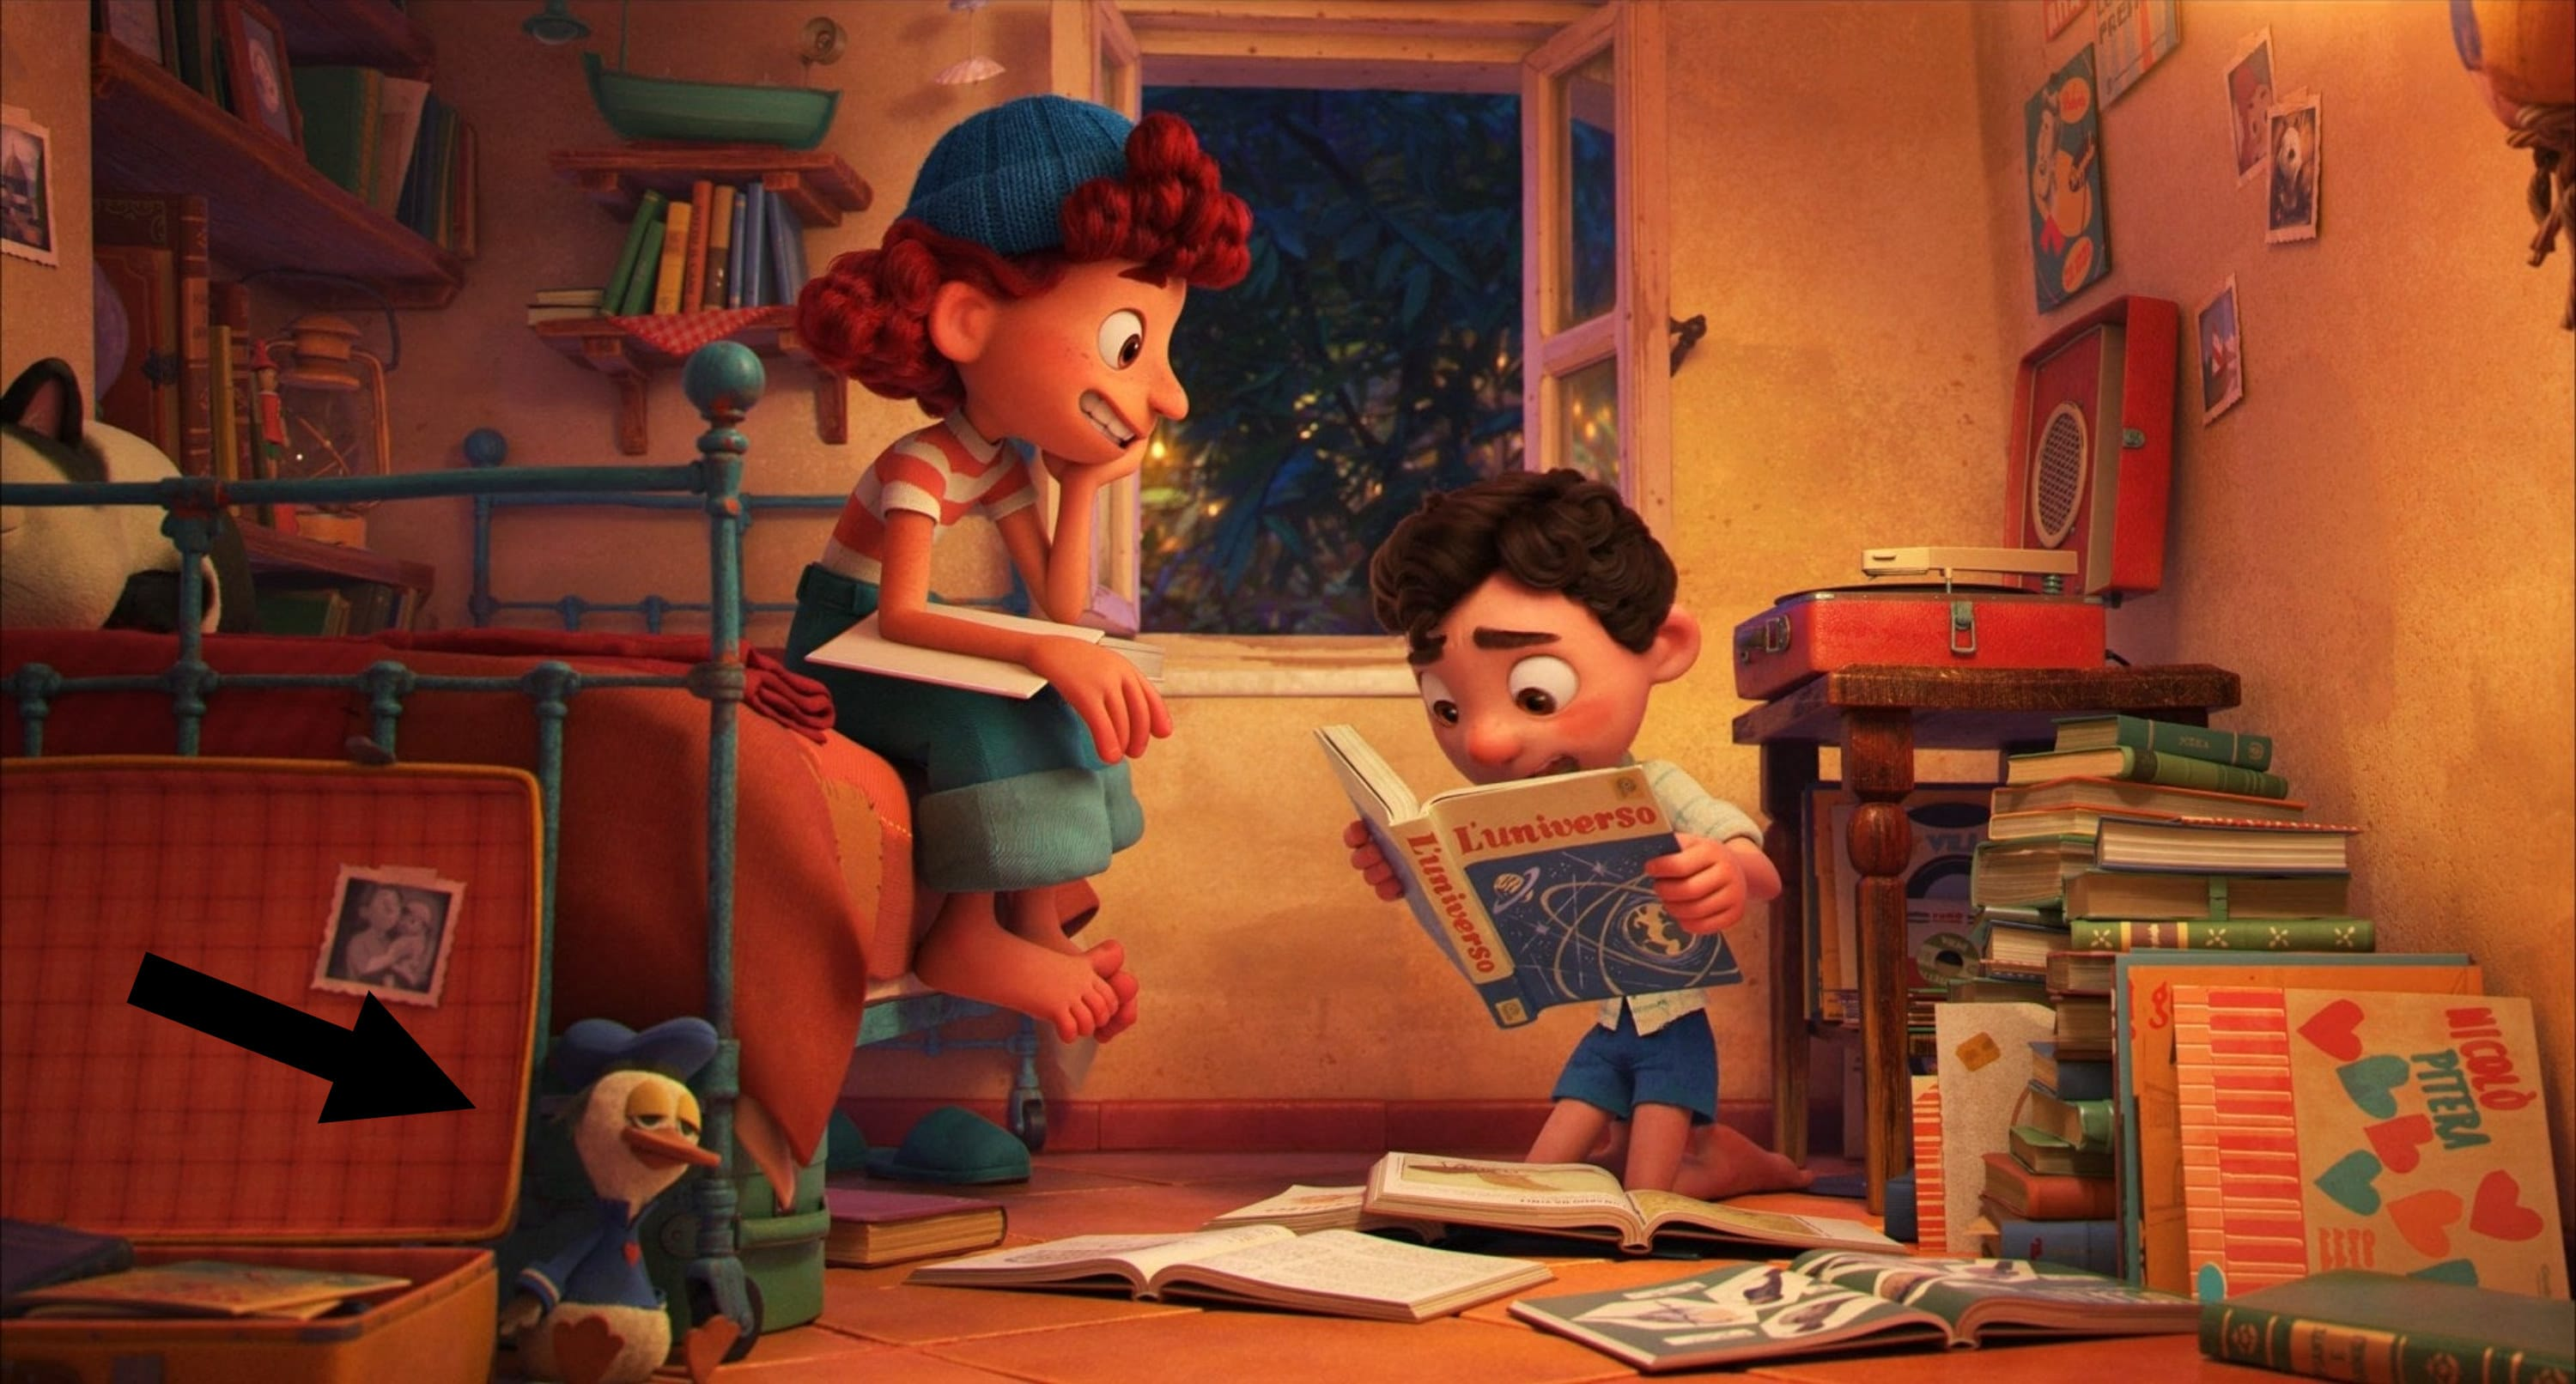 A girl and boy reading books in a room full of books and toys